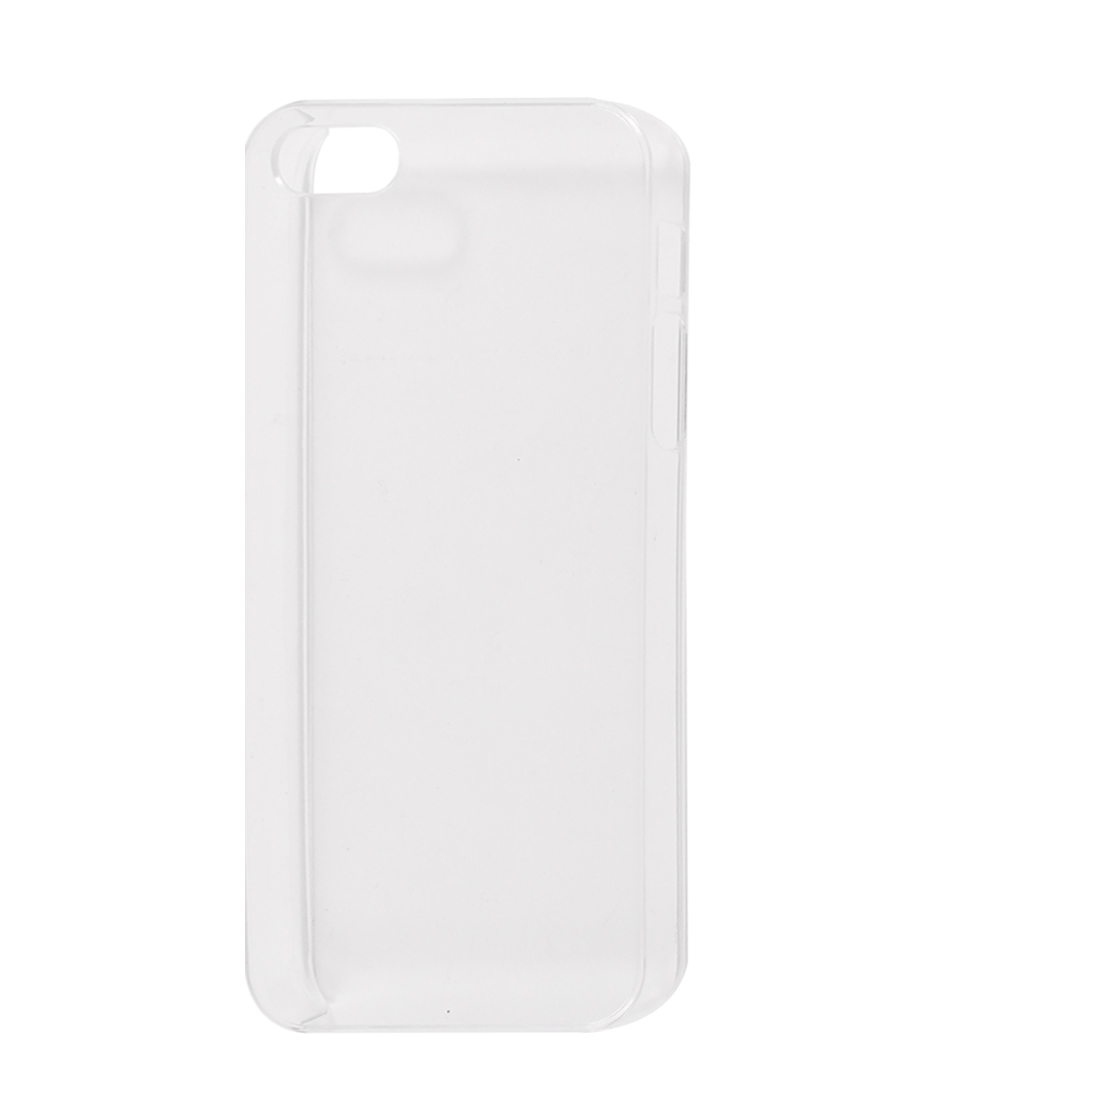 Ultrathin Clear Plastic Protective Case Cover for iPhone 5 5G